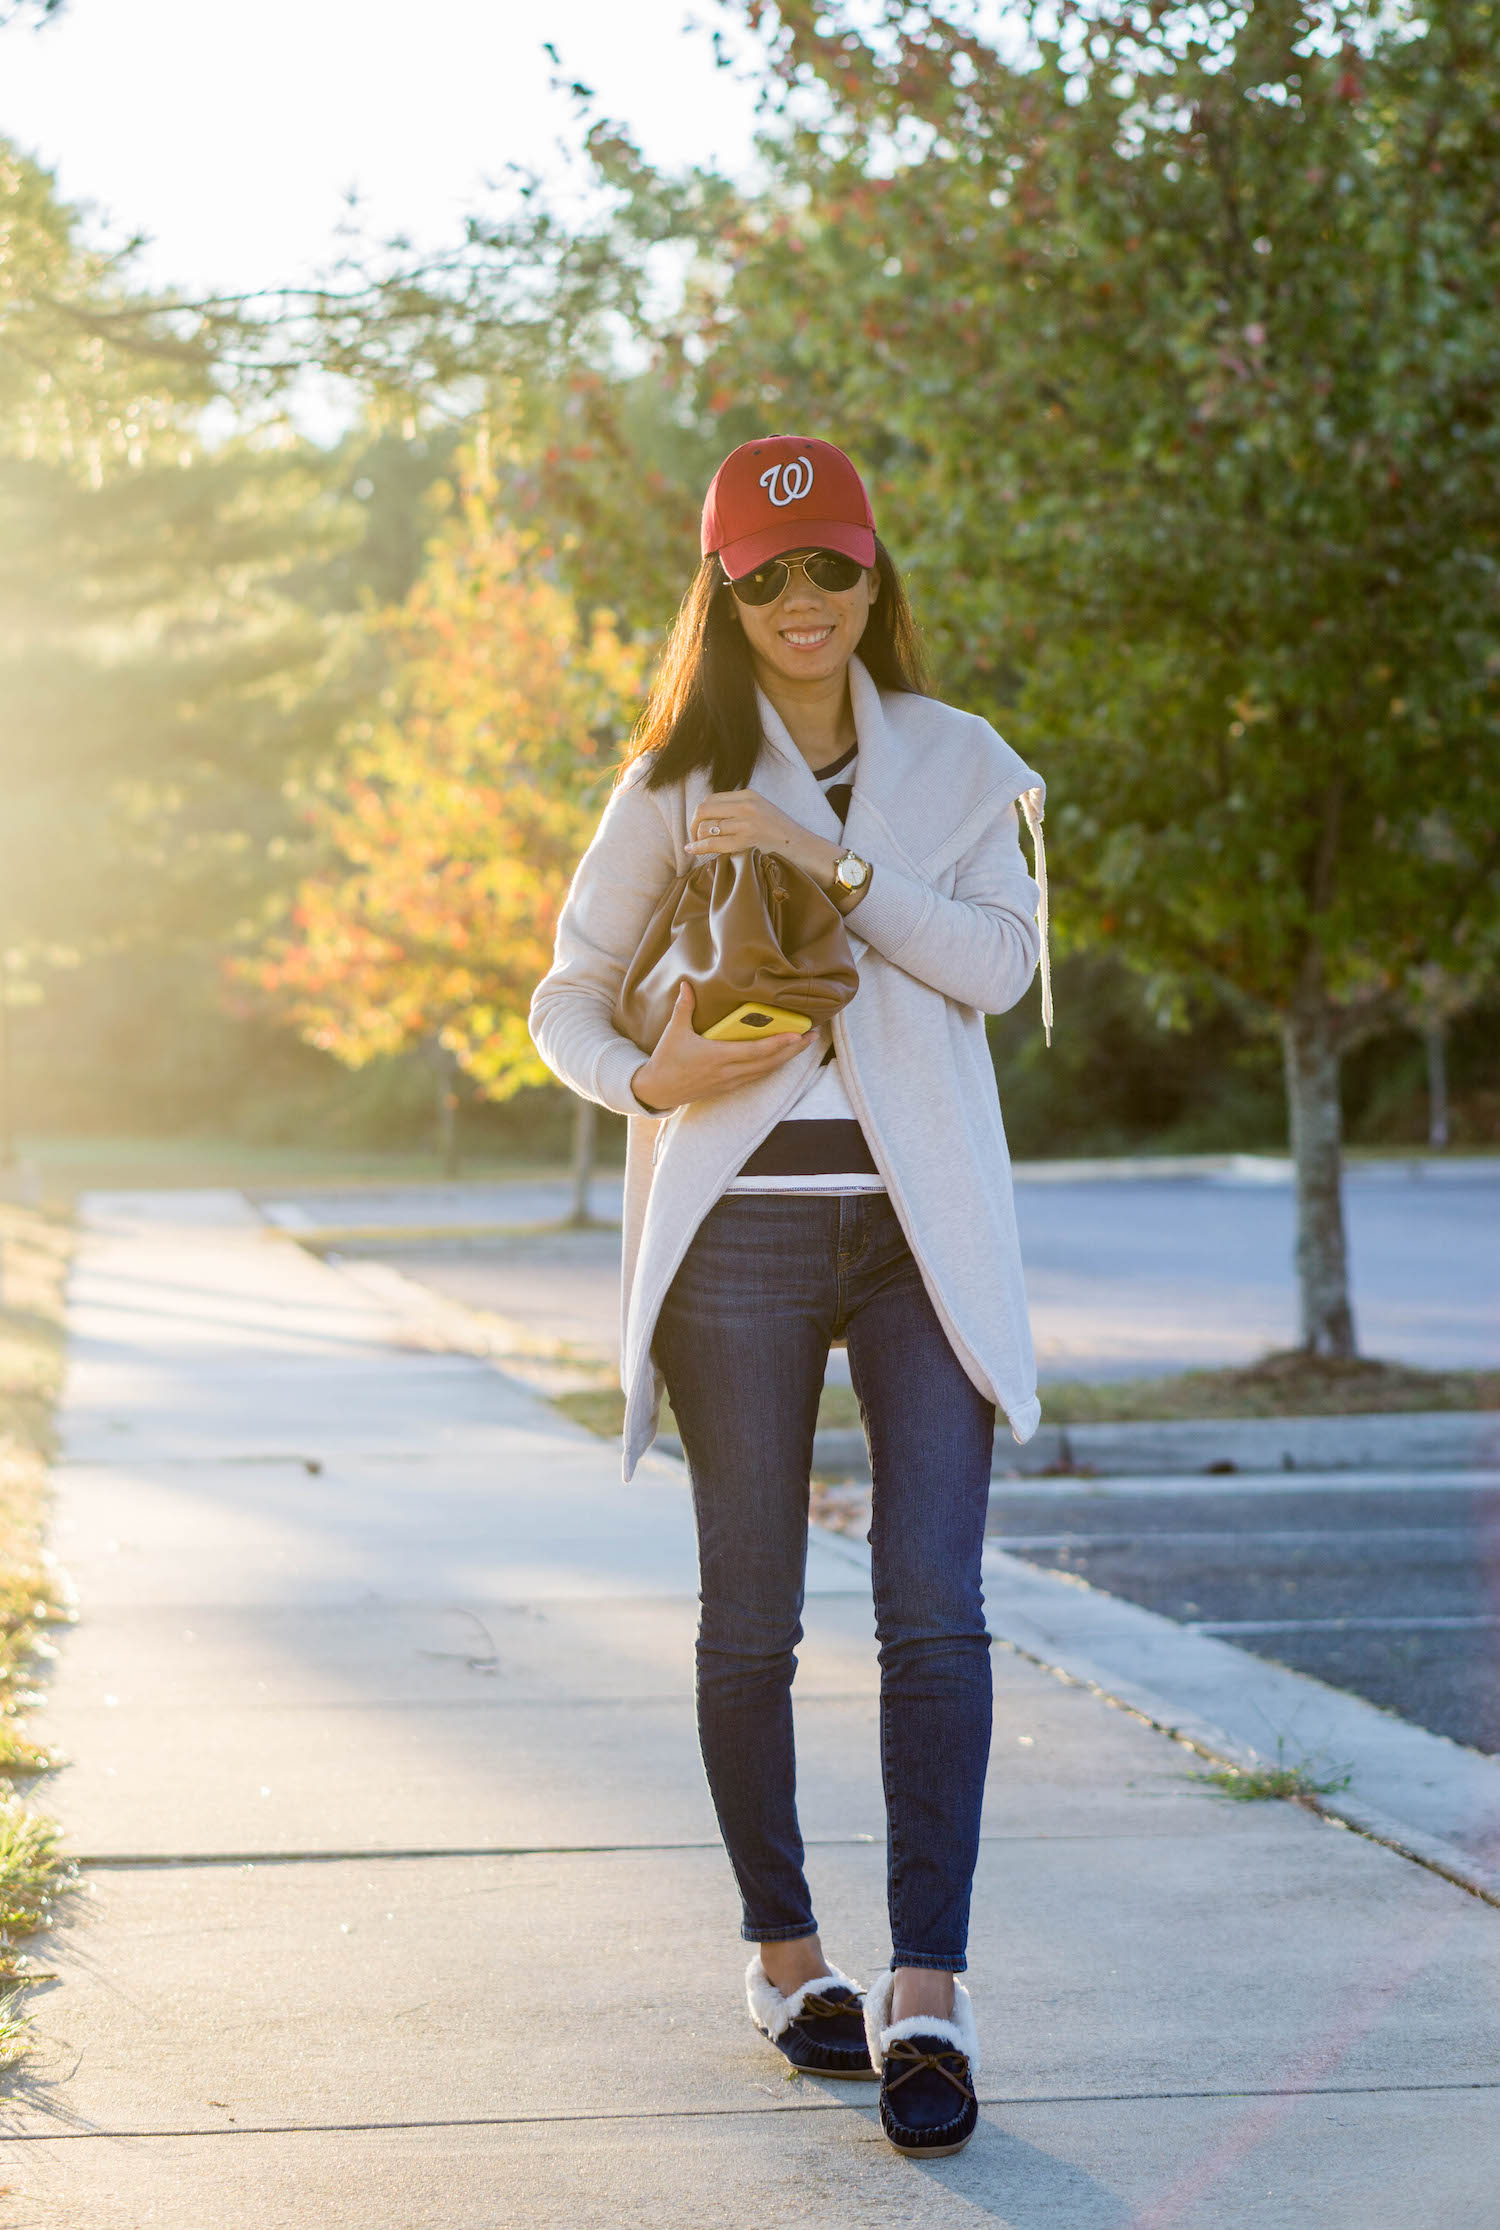 "Washington Nationals cap, Zella Nola wrap sweatshirt, Gap rugby shirt in navy stripes, J.Crew 8"" toothpick jean in Vista wash, Looks Like Summer Claudette leather crossbody bag, J.Crew Factory suede shearling moccasin slippers, Tory Burch Whitney watch"